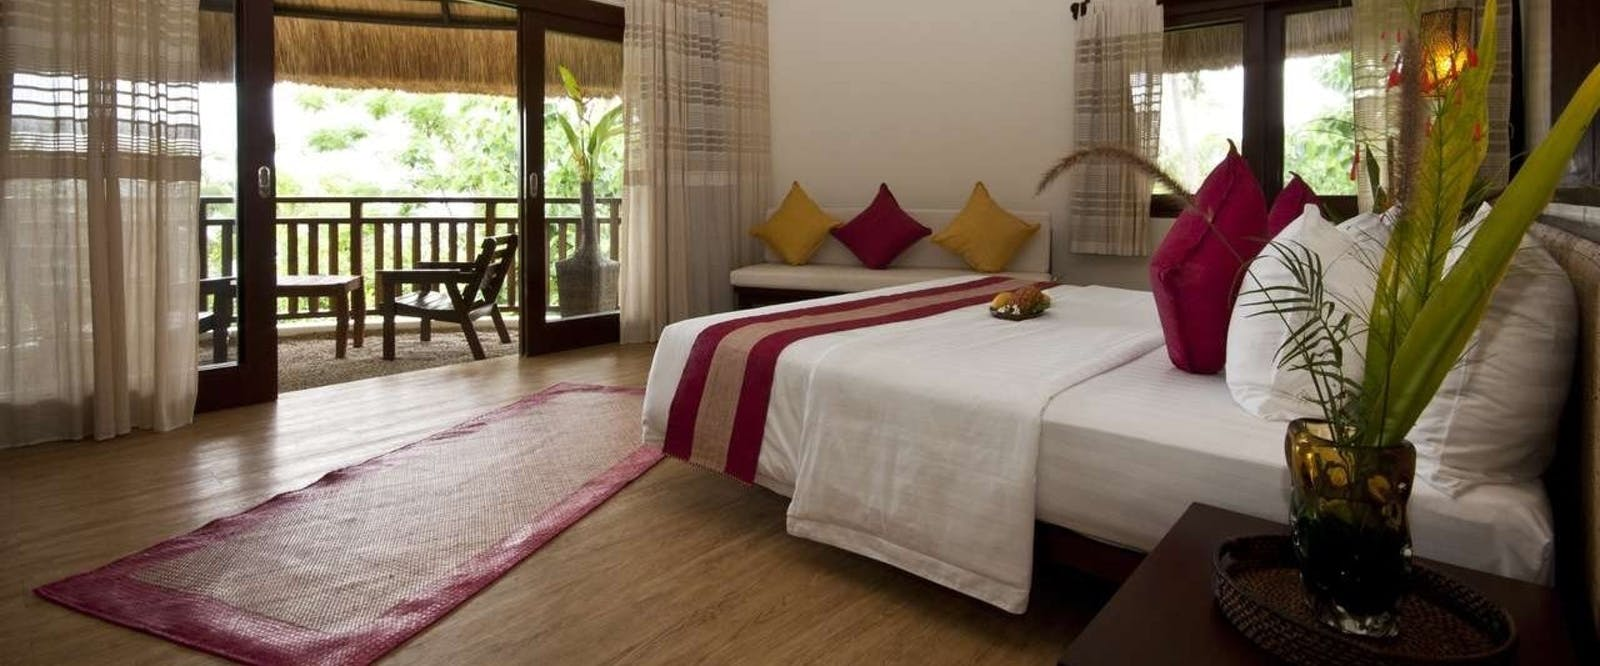 Deluxe King Bedroom at Amun Ini Beach Resort & Spa, Philippenes